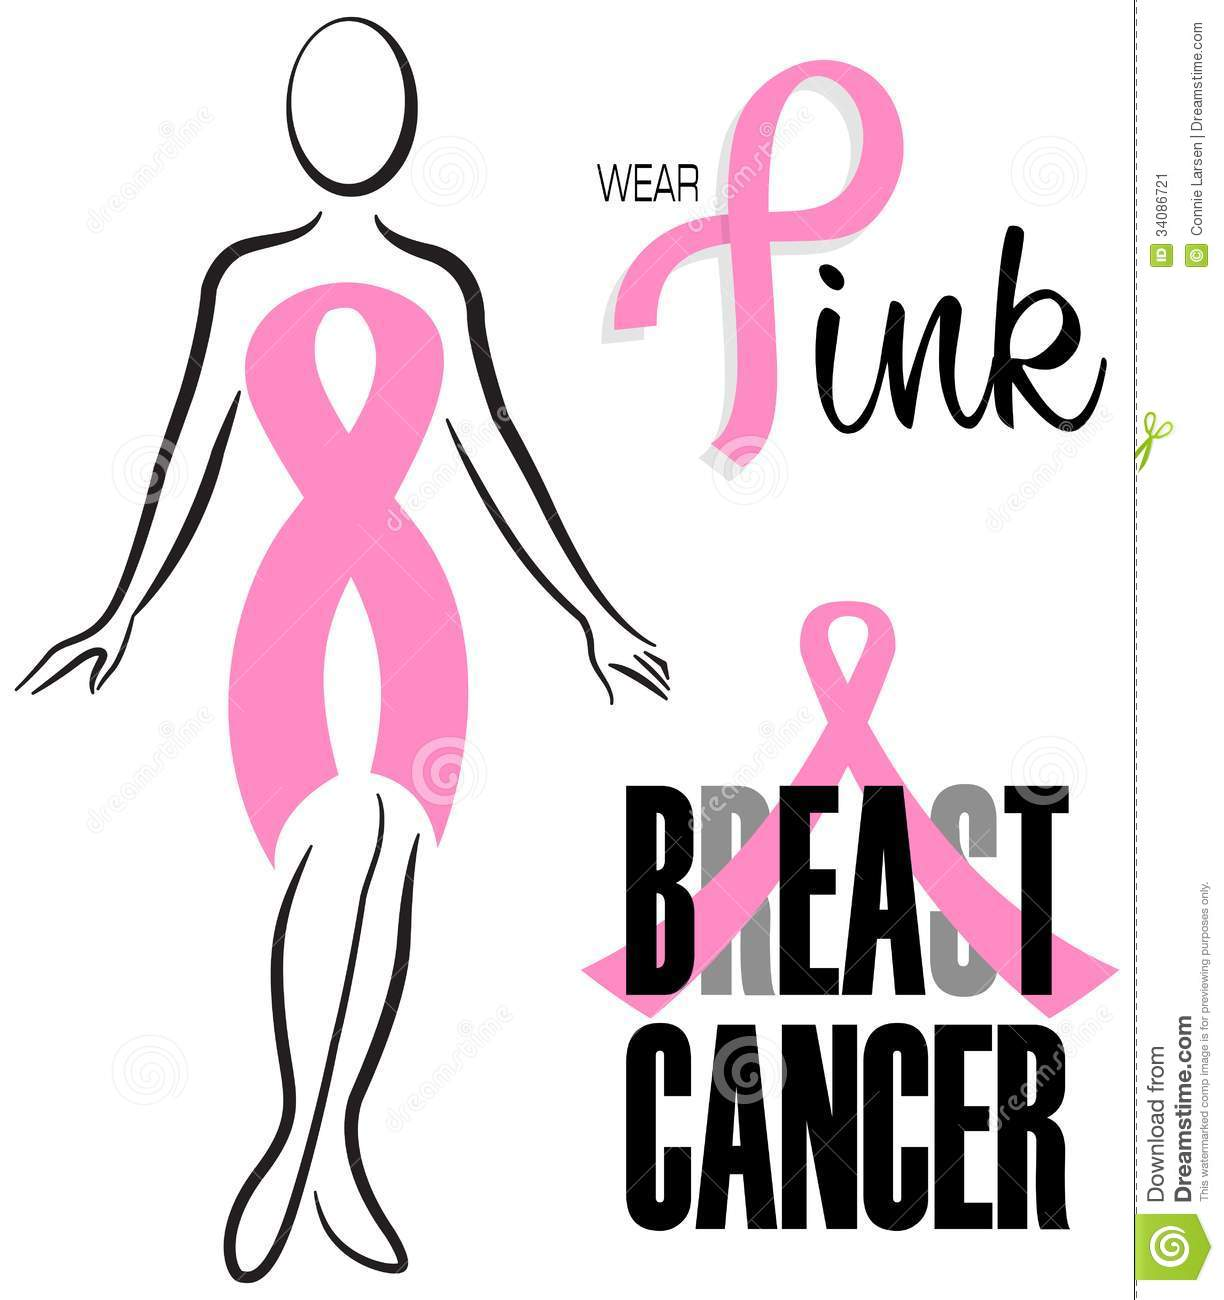 ... cancer awareness ribbon worn by a woman as a dress, Beat Breast Cancer